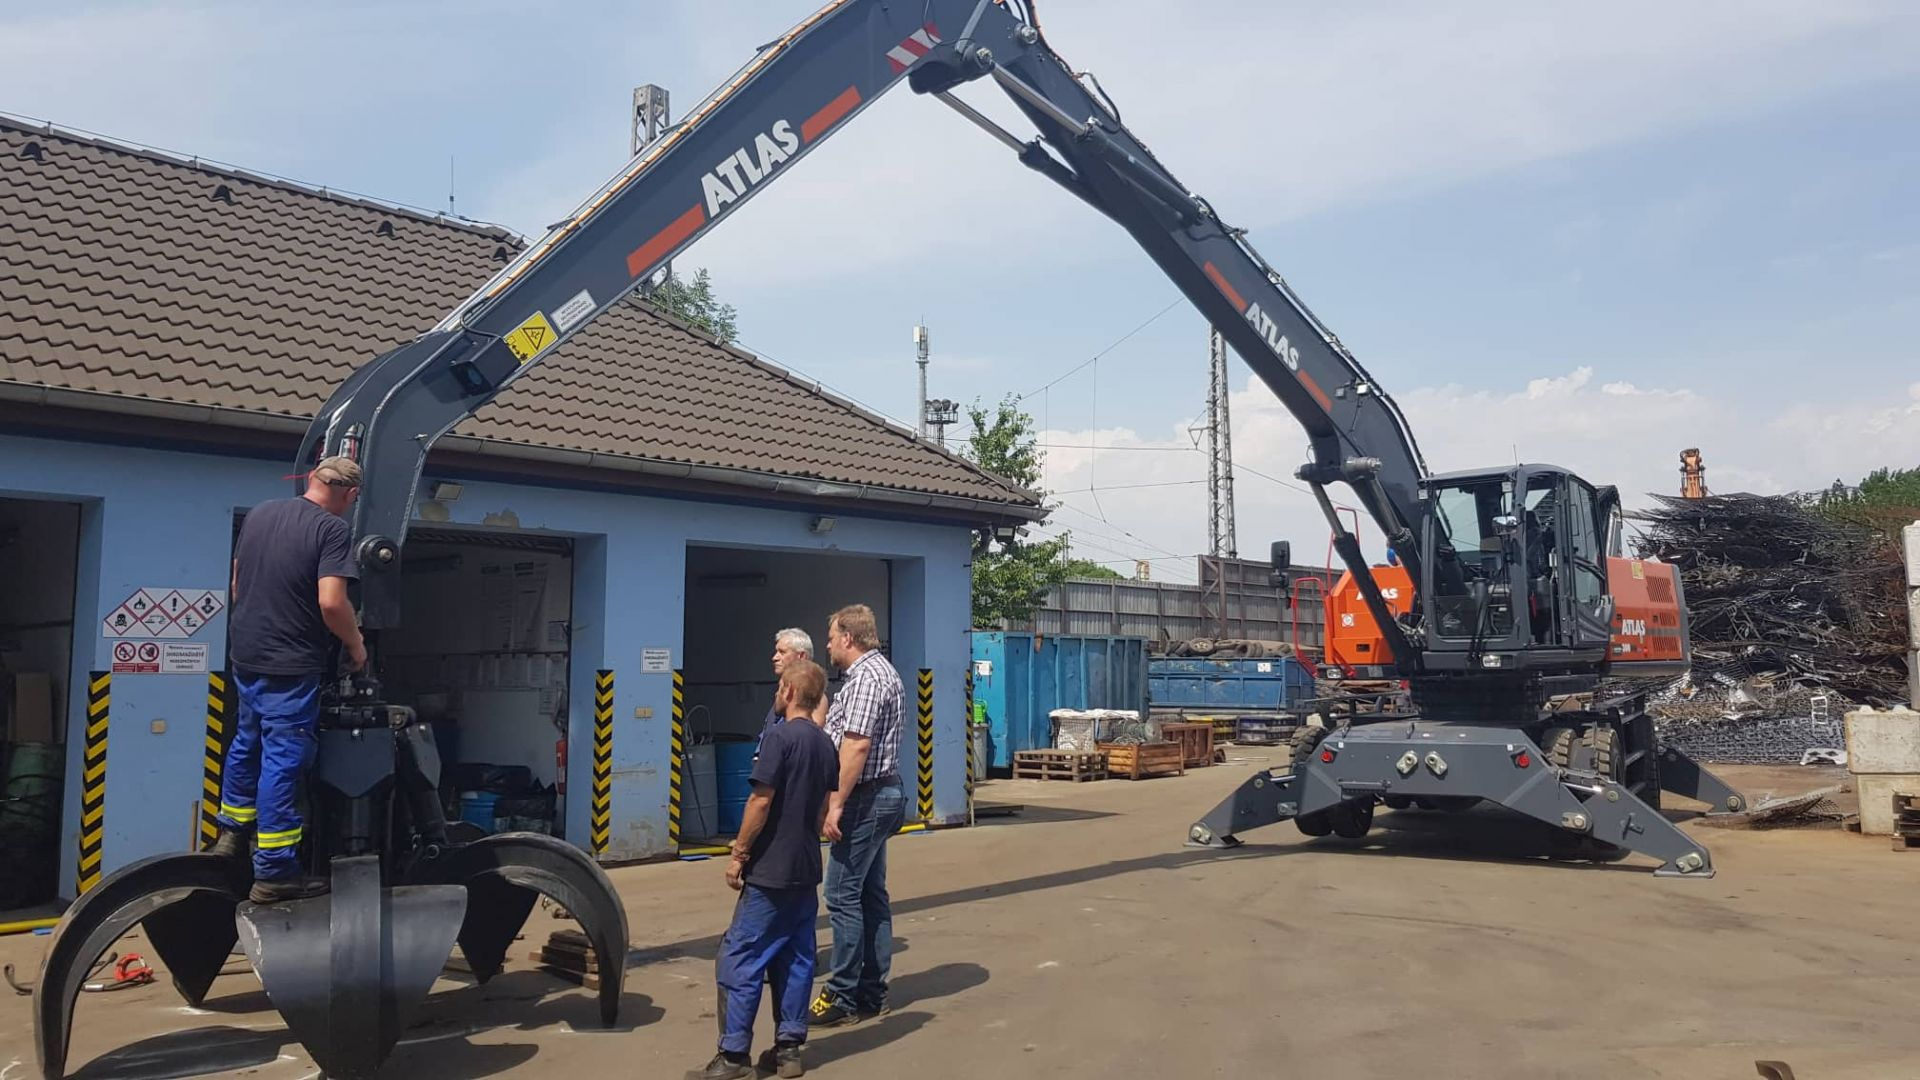 RECYCLING - kovové odpady company has purchased 2 ATLAS material handlers from our company